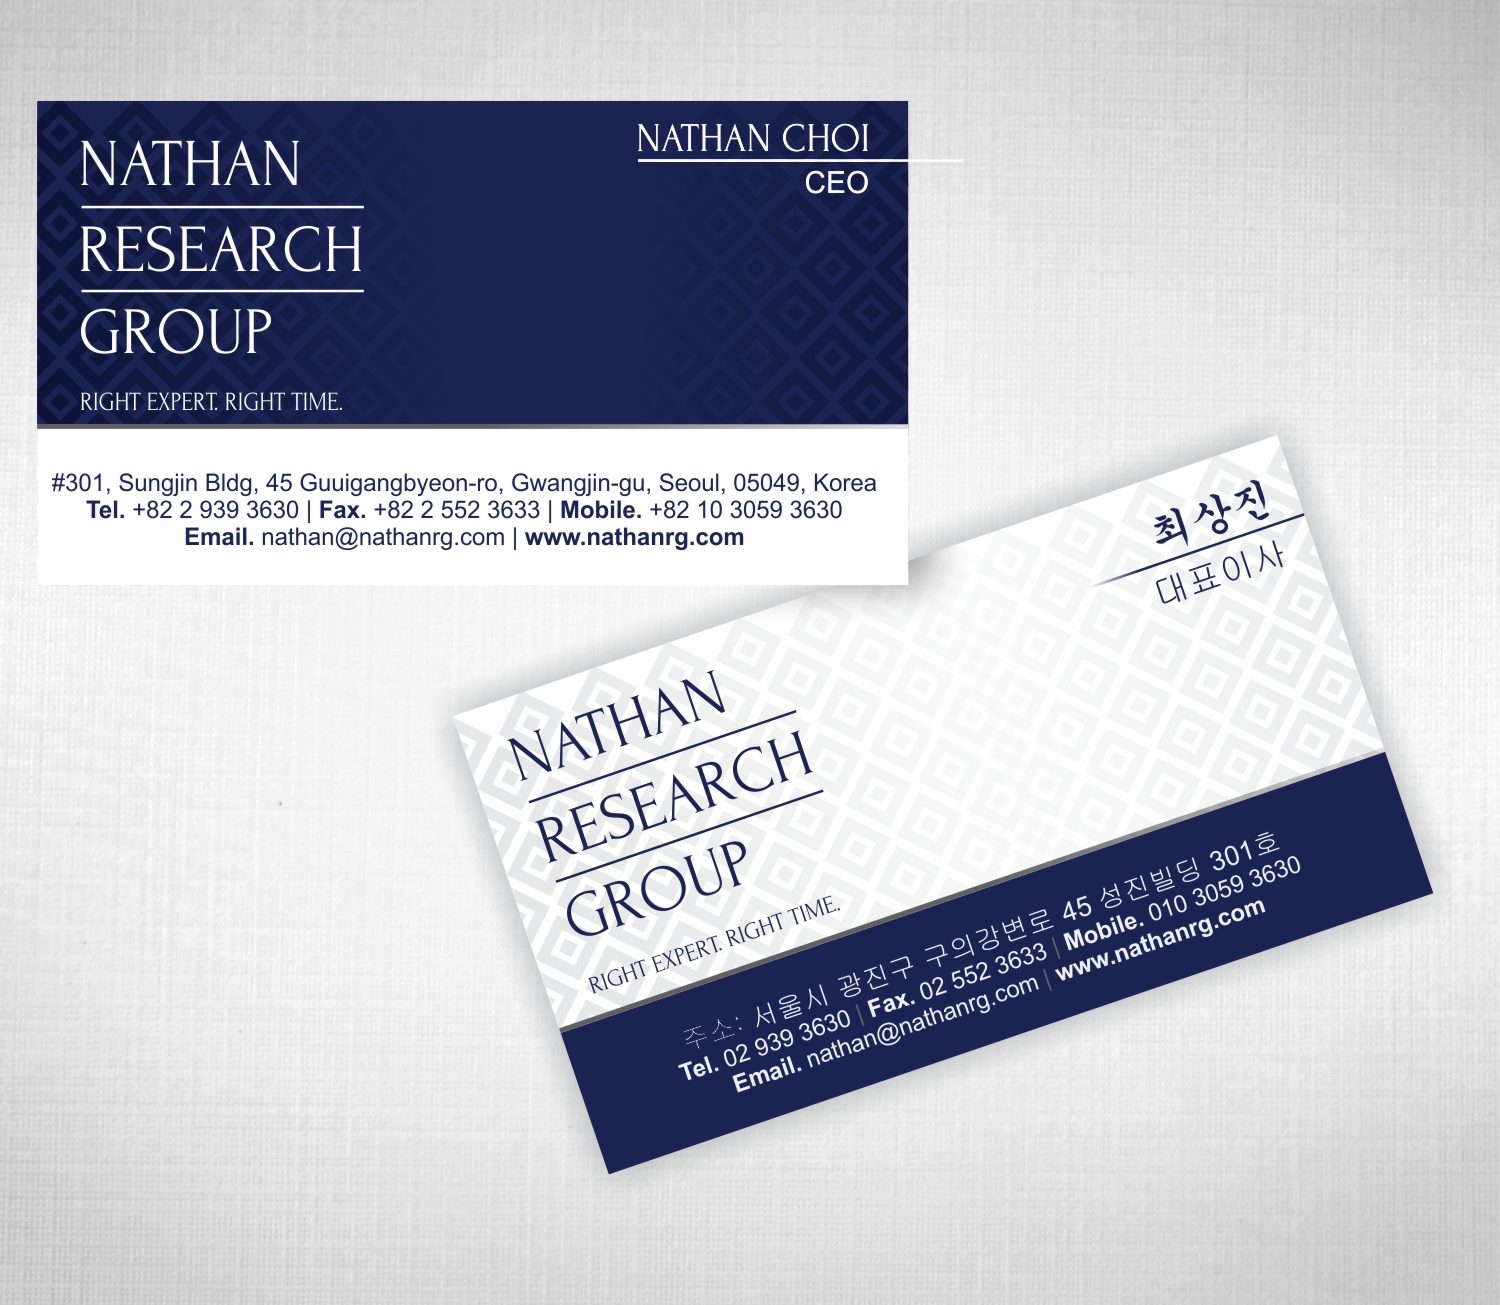 Elegant playful recruitment business card design for nathan business card design by hobographix for nathan research group inc design 19310865 reheart Images